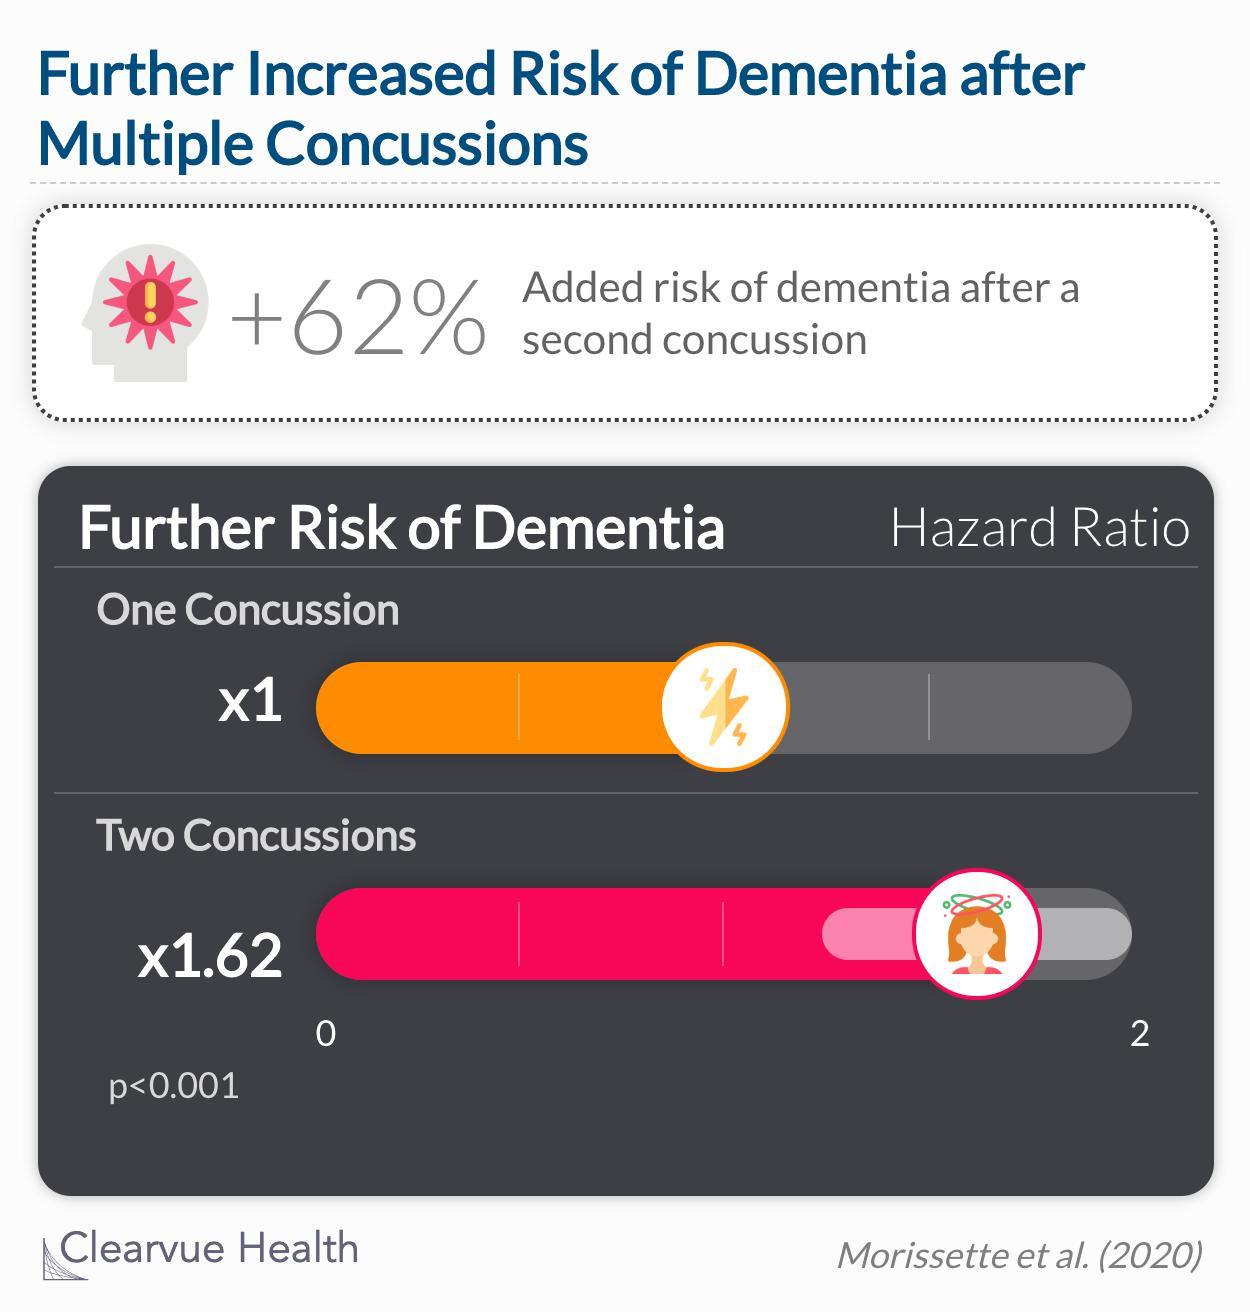 People who had two concussions had a 62% further chance of dementia diagnosis compared to people who had one concussion.